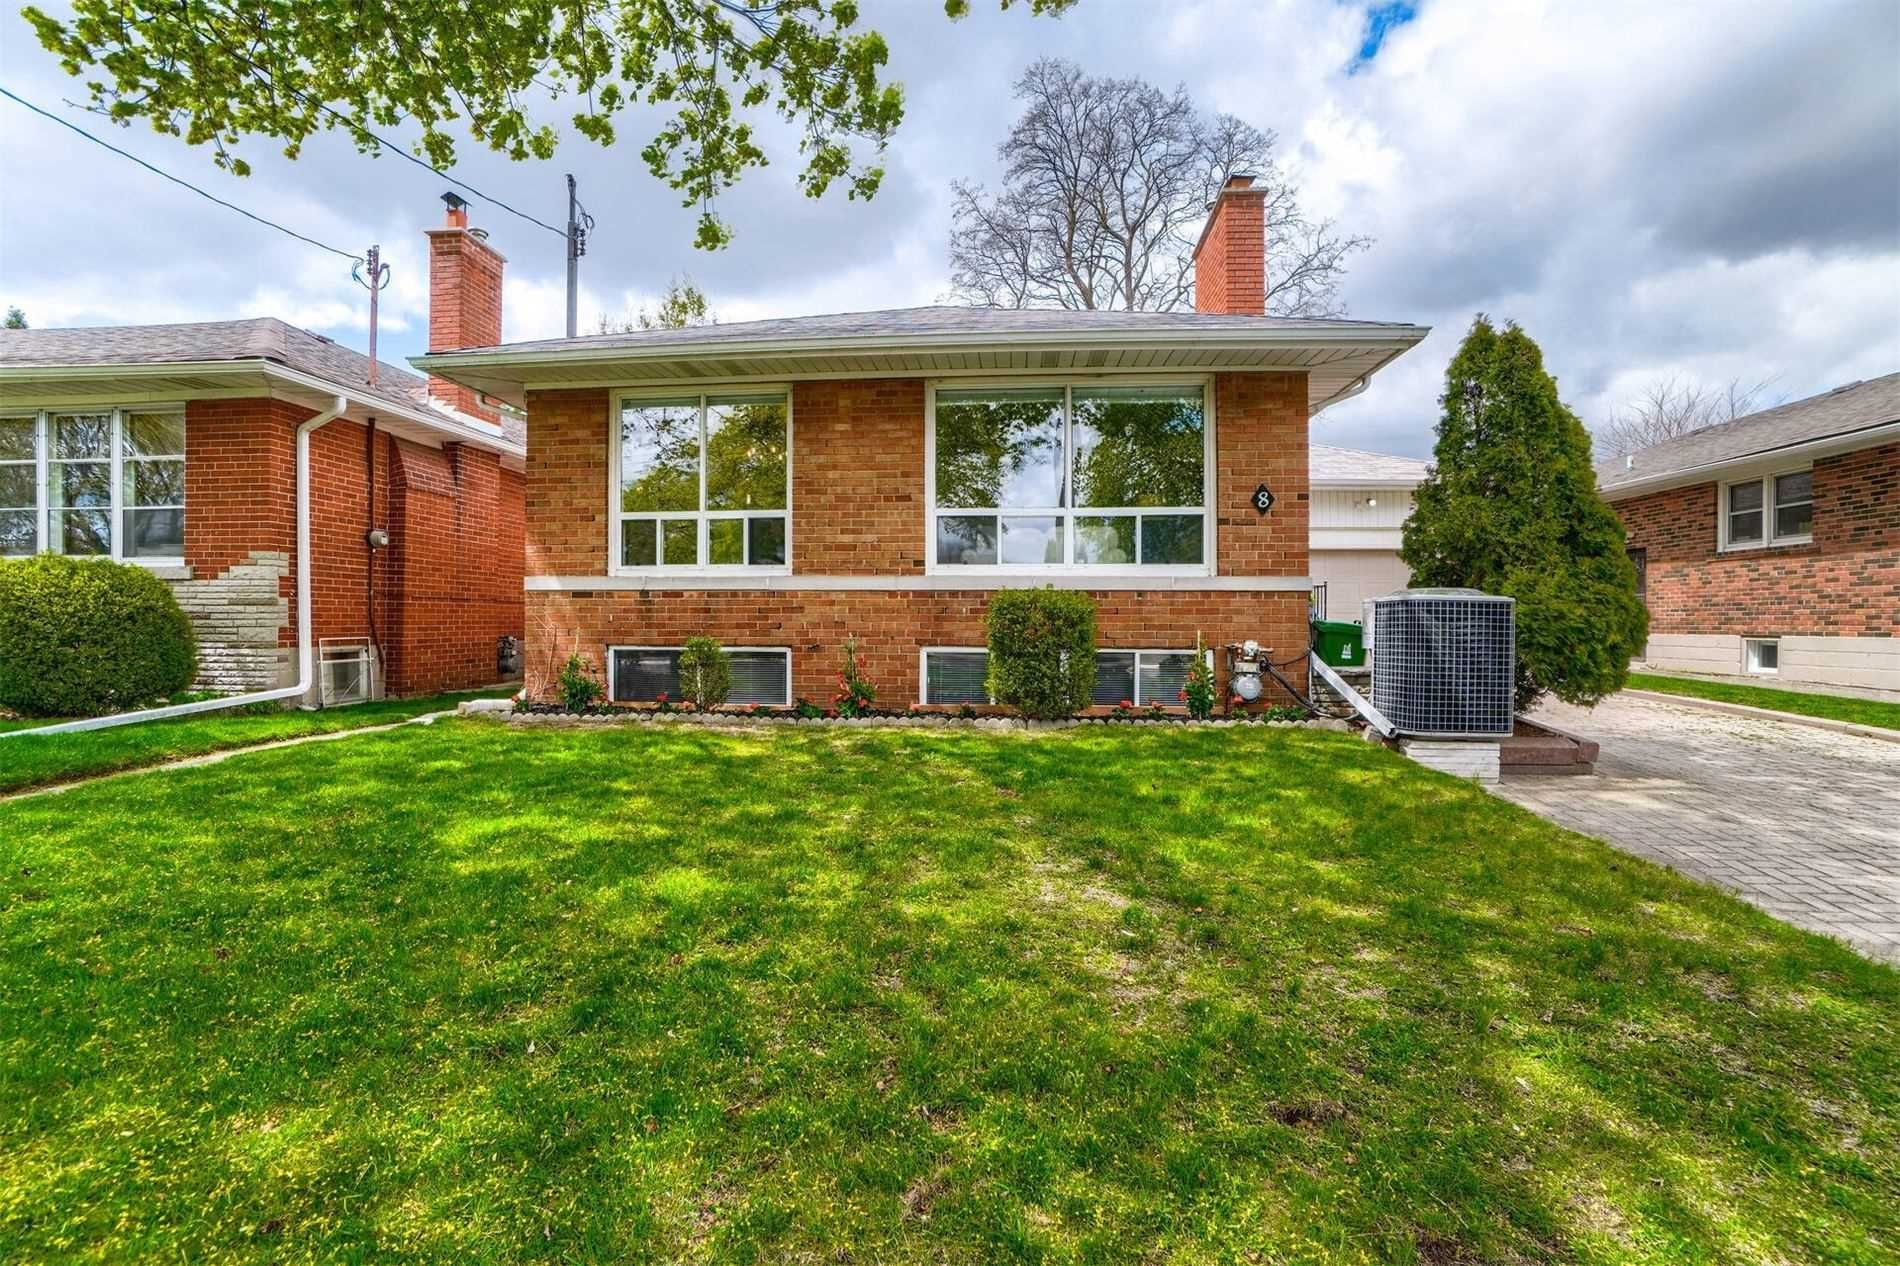 Main Photo: 8 Dumbarton Road in Toronto: Stonegate-Queensway House (Bungalow) for sale (Toronto W07)  : MLS®# W5232182